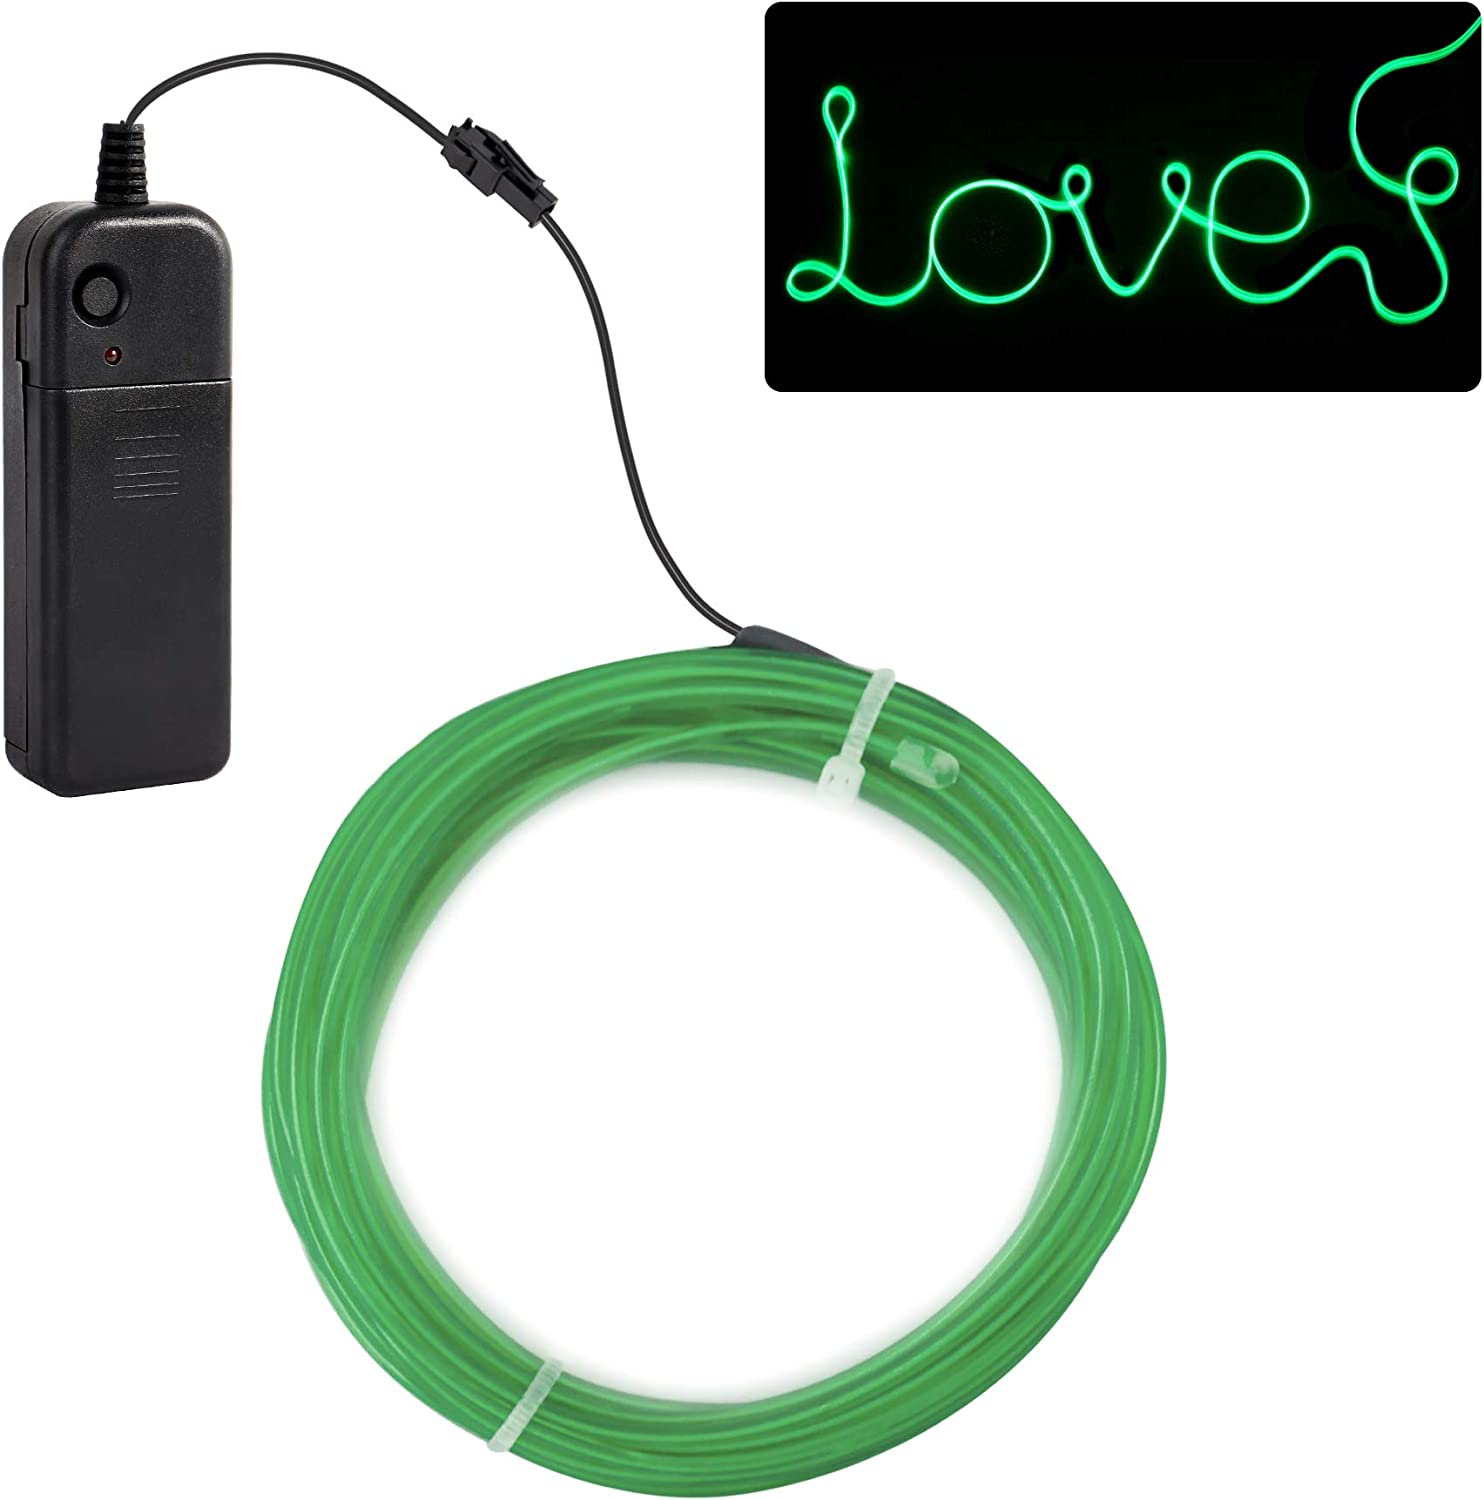 jiguoor EL Wire with Battery Pack 15ft / 5M Super Bright Halloween Light Neon Tube Neon Light Wire Glowing strobing of 360 Degrees of Illumination for Festival, Party Decoration(Green,15ft/ 5M)